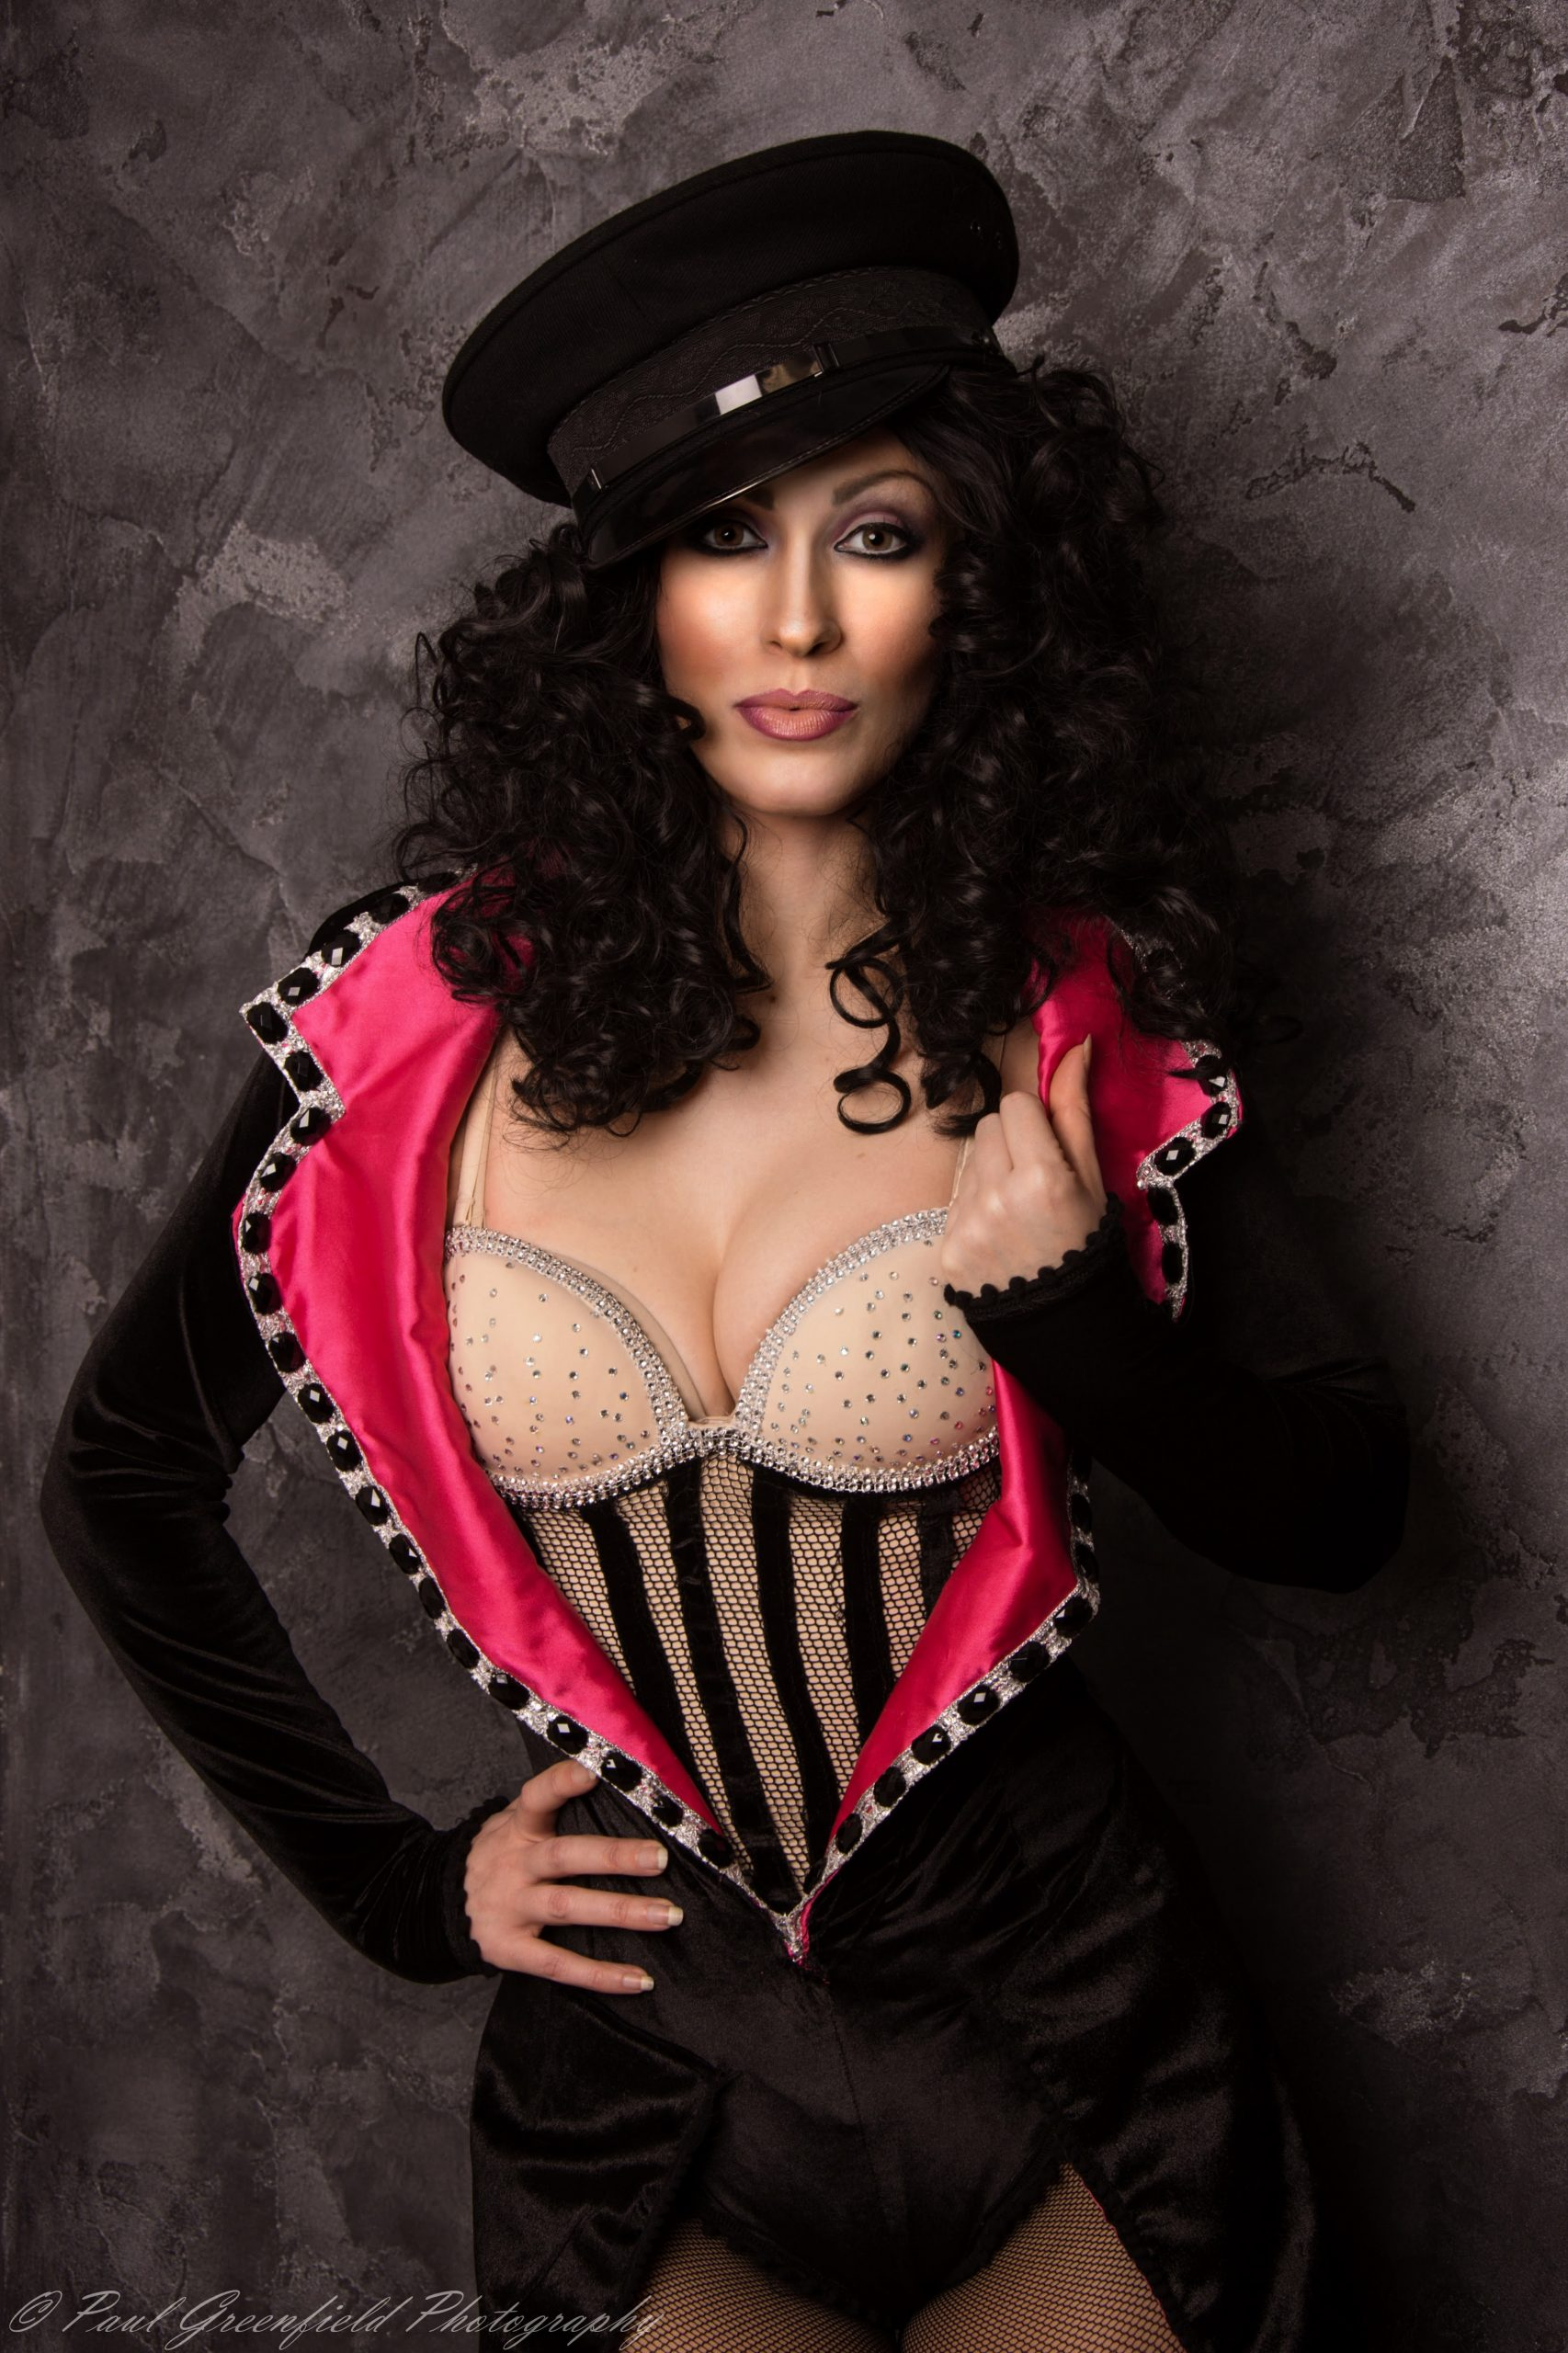 Stacy Green as Cher